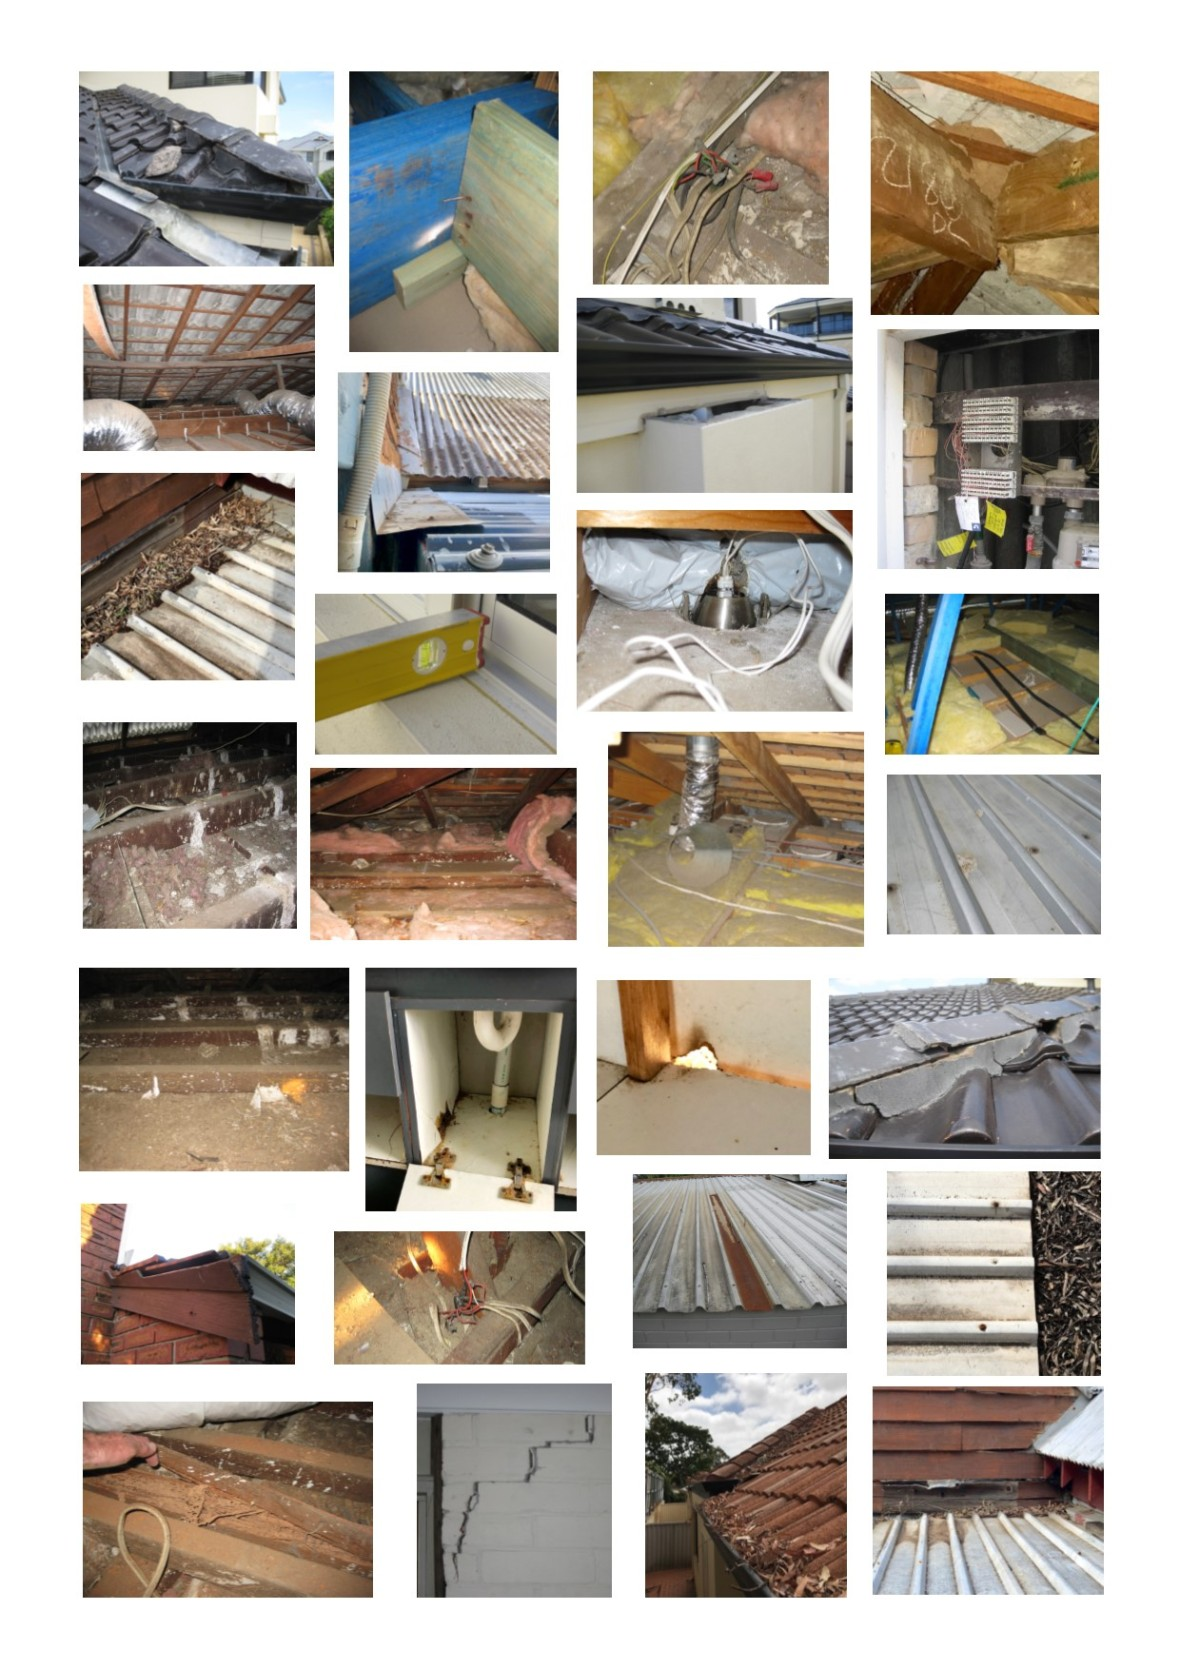 1 Building Inspections Perth